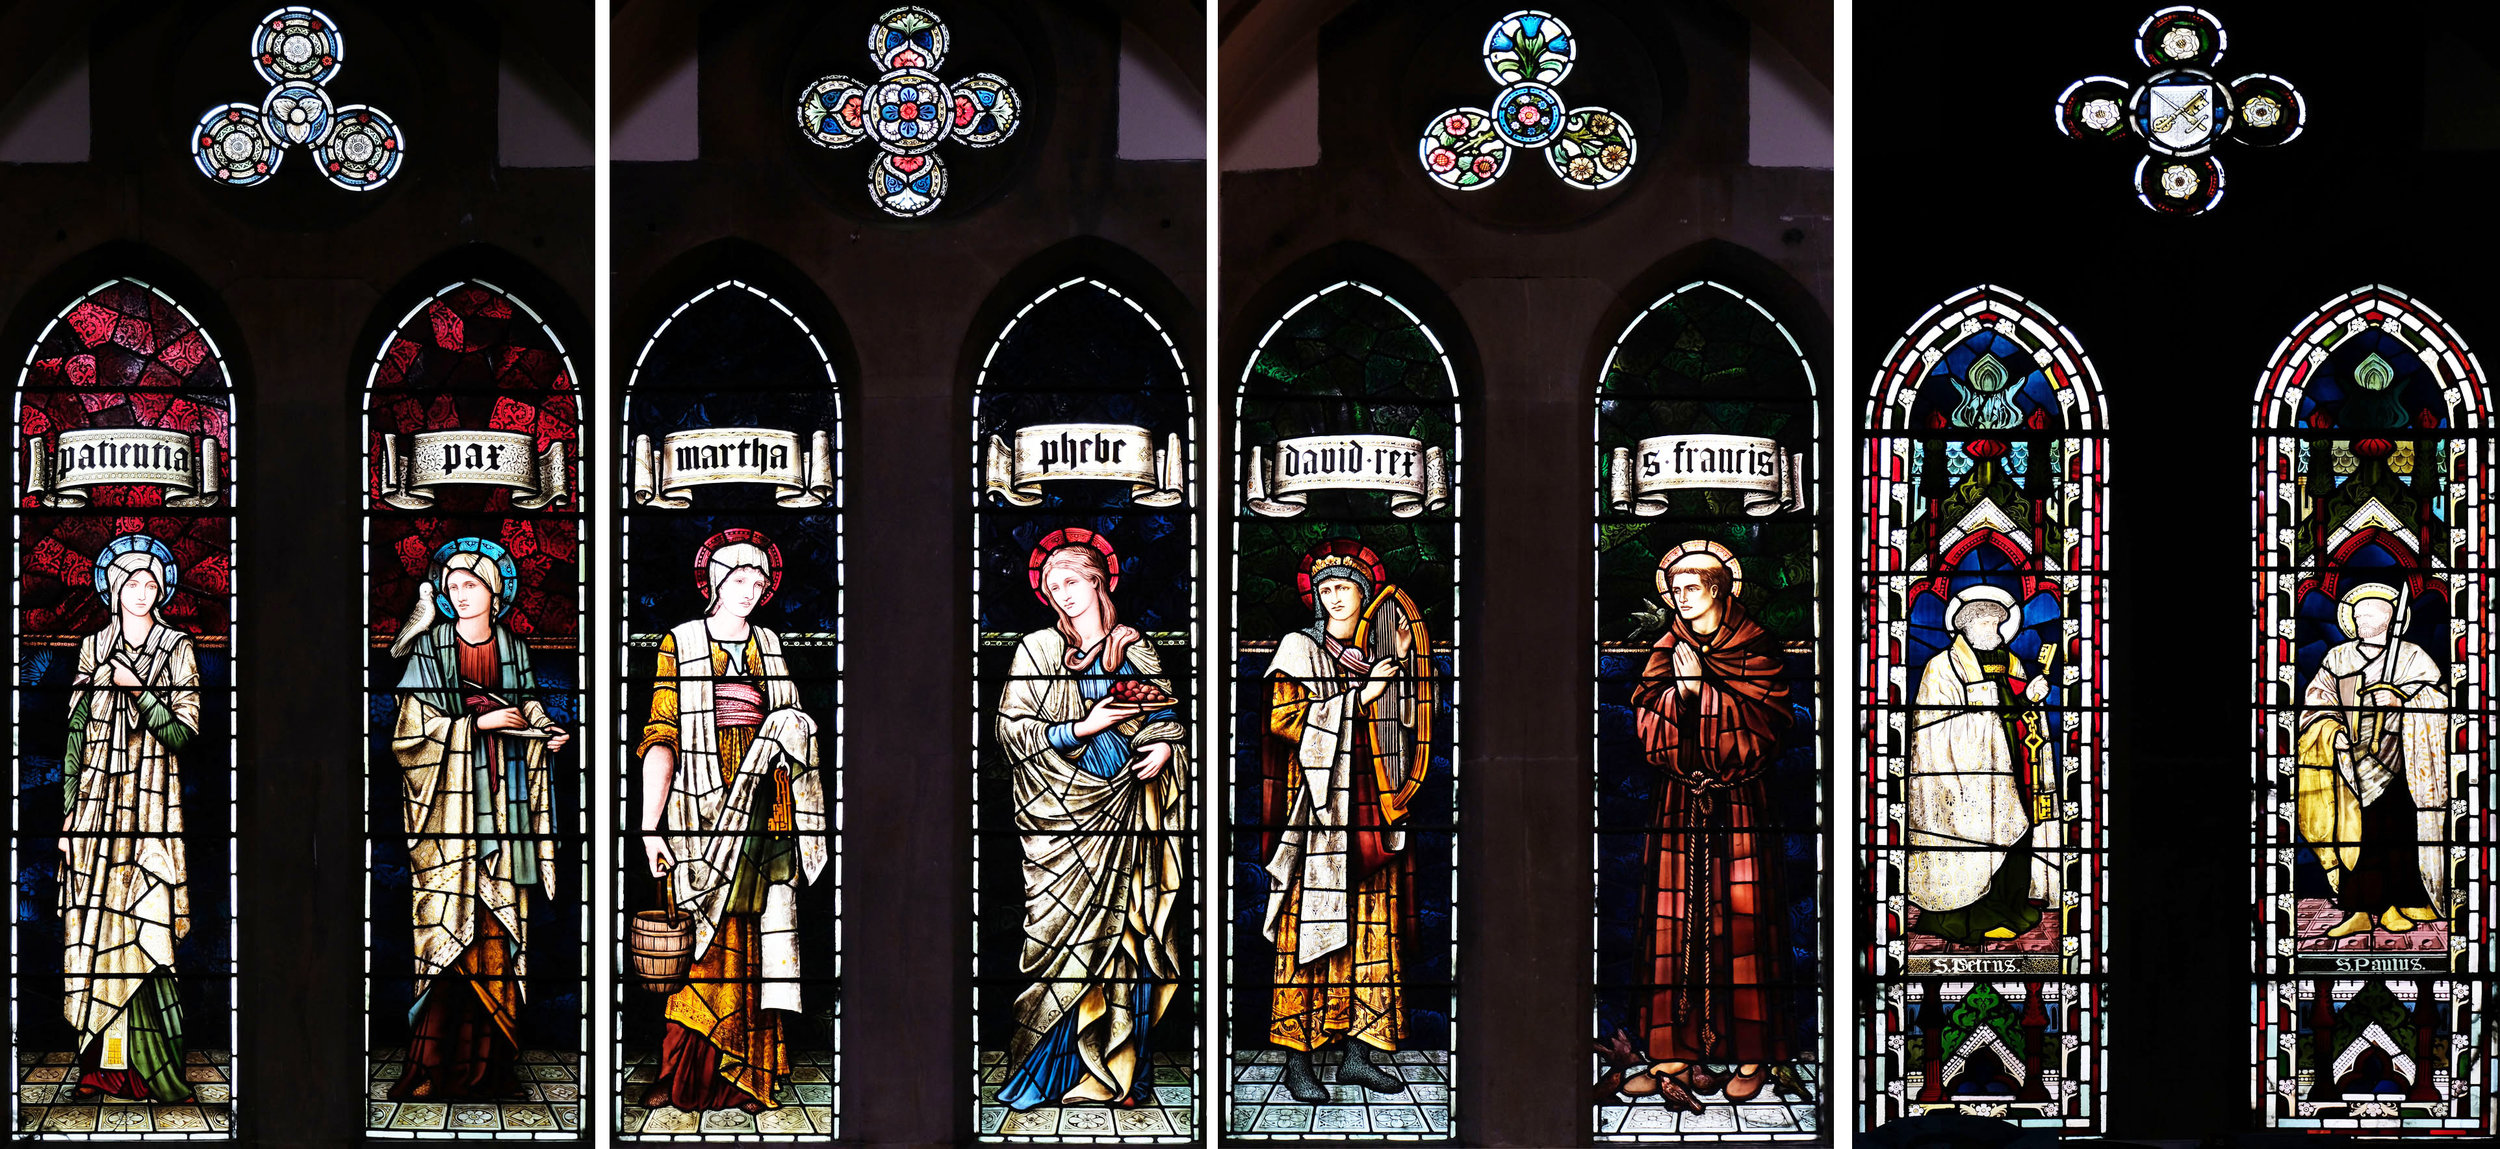 South Aisle, left to right: Patientia & Pax (1909), Martha & Phebe (1903), King David & St Francis (1911), St Peter & St Paul (1865).